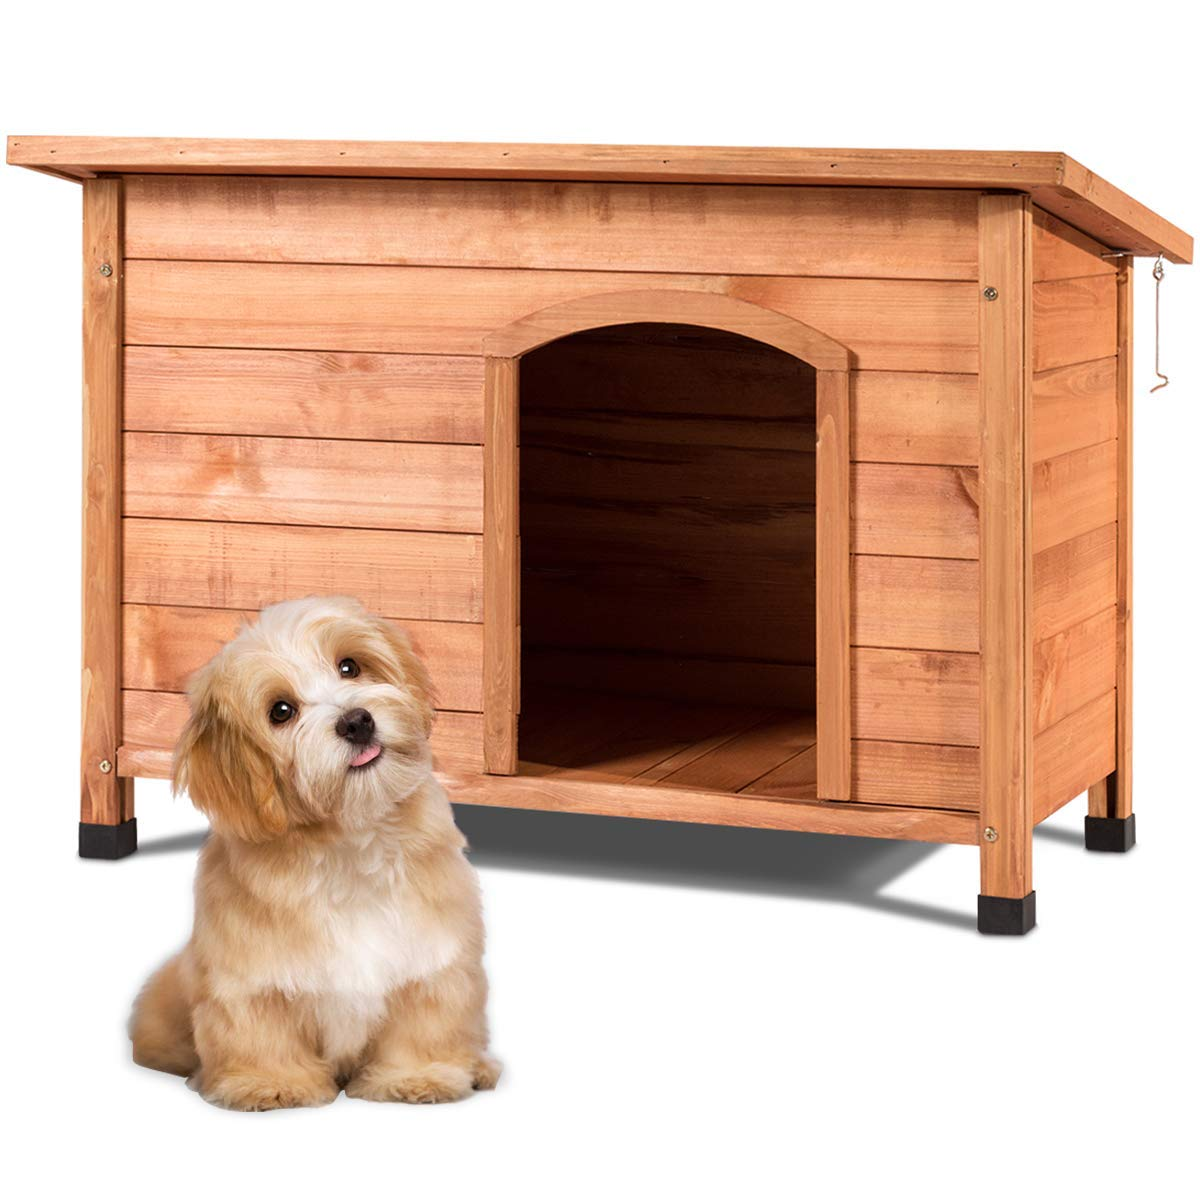 Tangkula Dog House, Outdoor Weather-Resistant Wooden Log Cabin, Home Pet Furniture, Pet House with Adjustable Feet & Removable Floor, Pet Dog House (Medium)